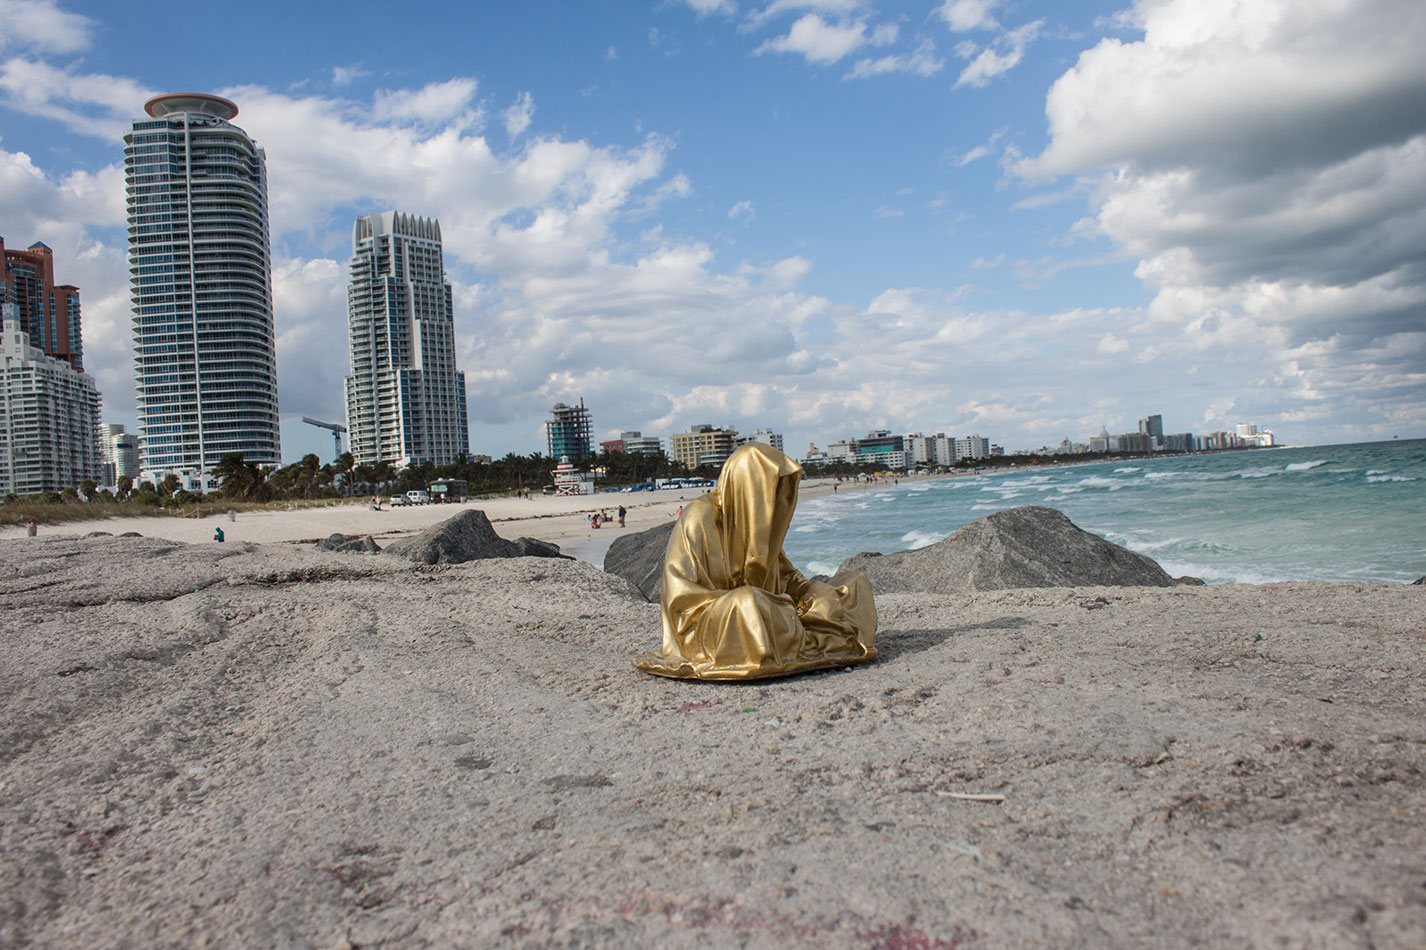 public-art-basel-miami-beach-fair-usa-florida-guardians-of-time-manfred-kili-kielnhofer-contemporary-fine-art-modern-arts-design-antiques-sculpture-6895